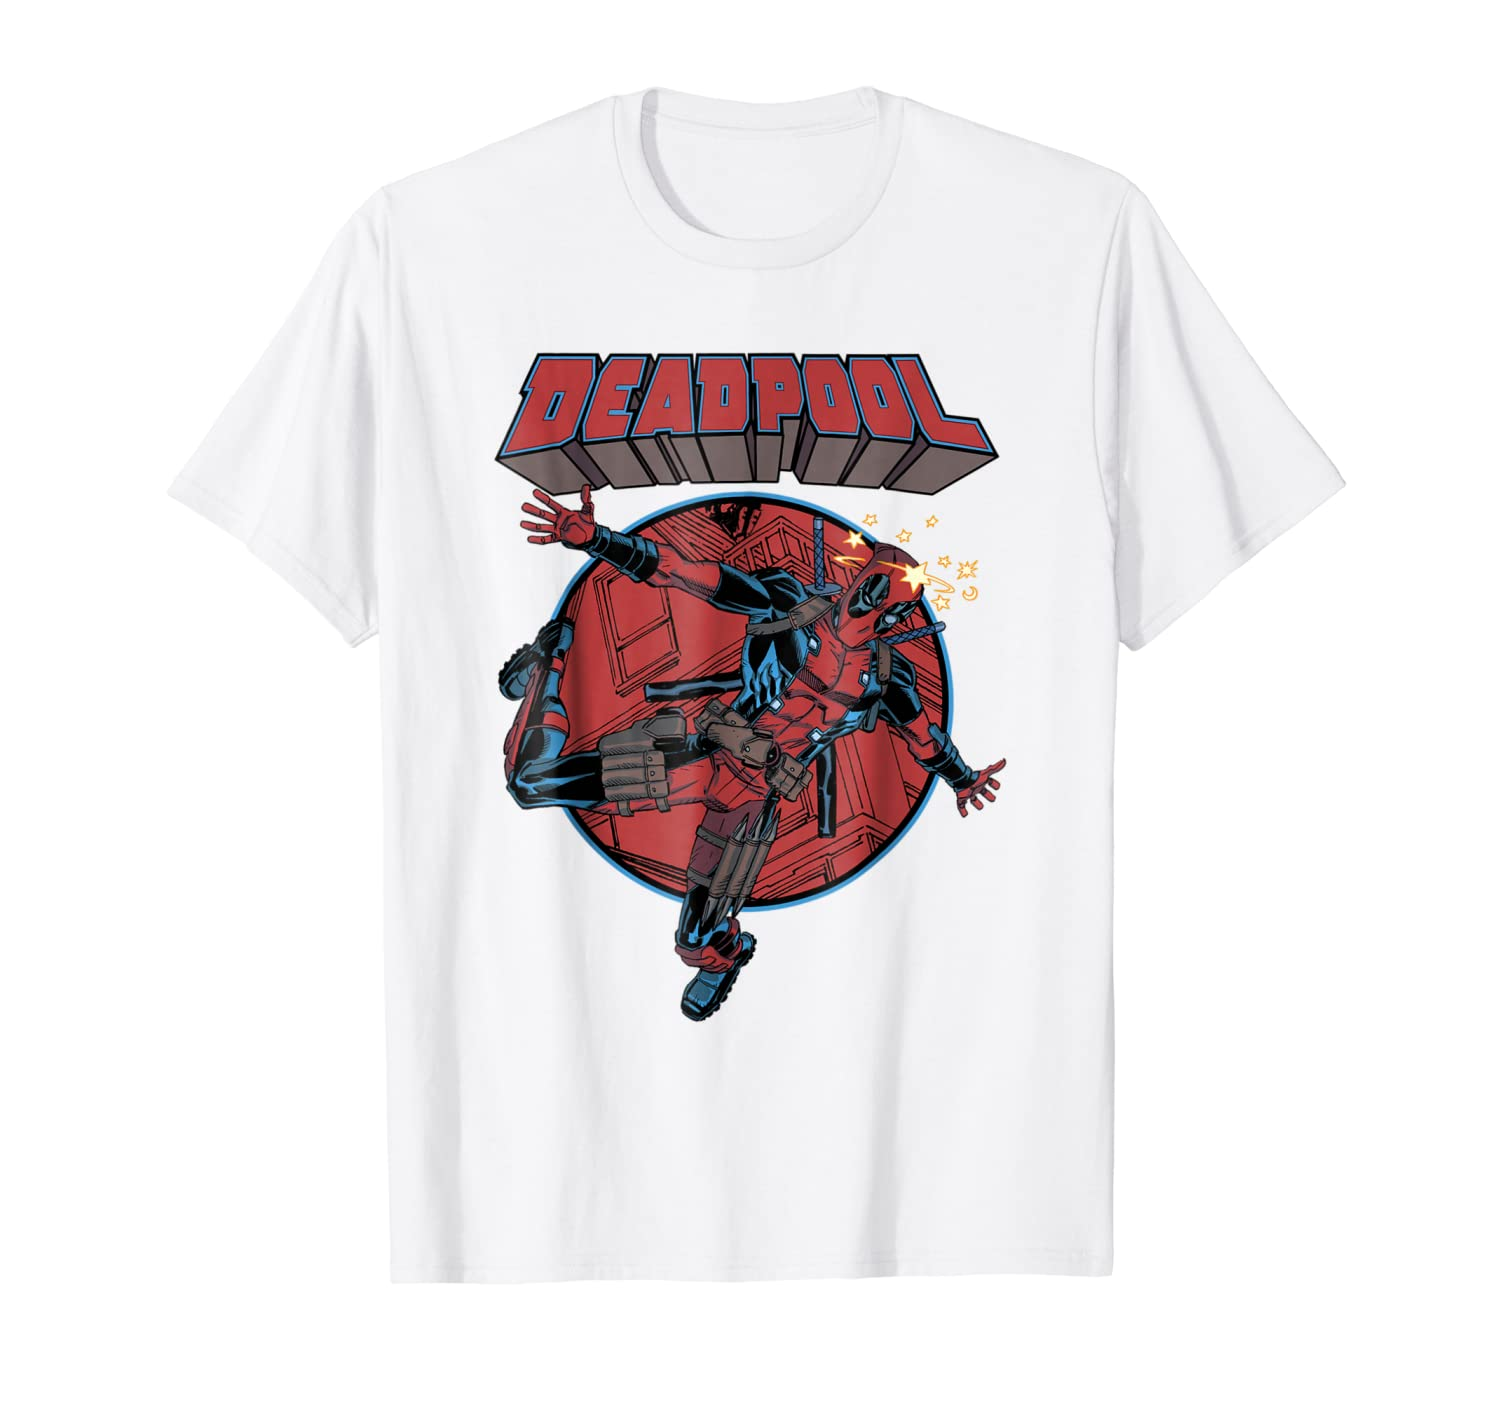 Amazon.com: Marvel Deadpool Falling chupete Graphic T-Shit ...